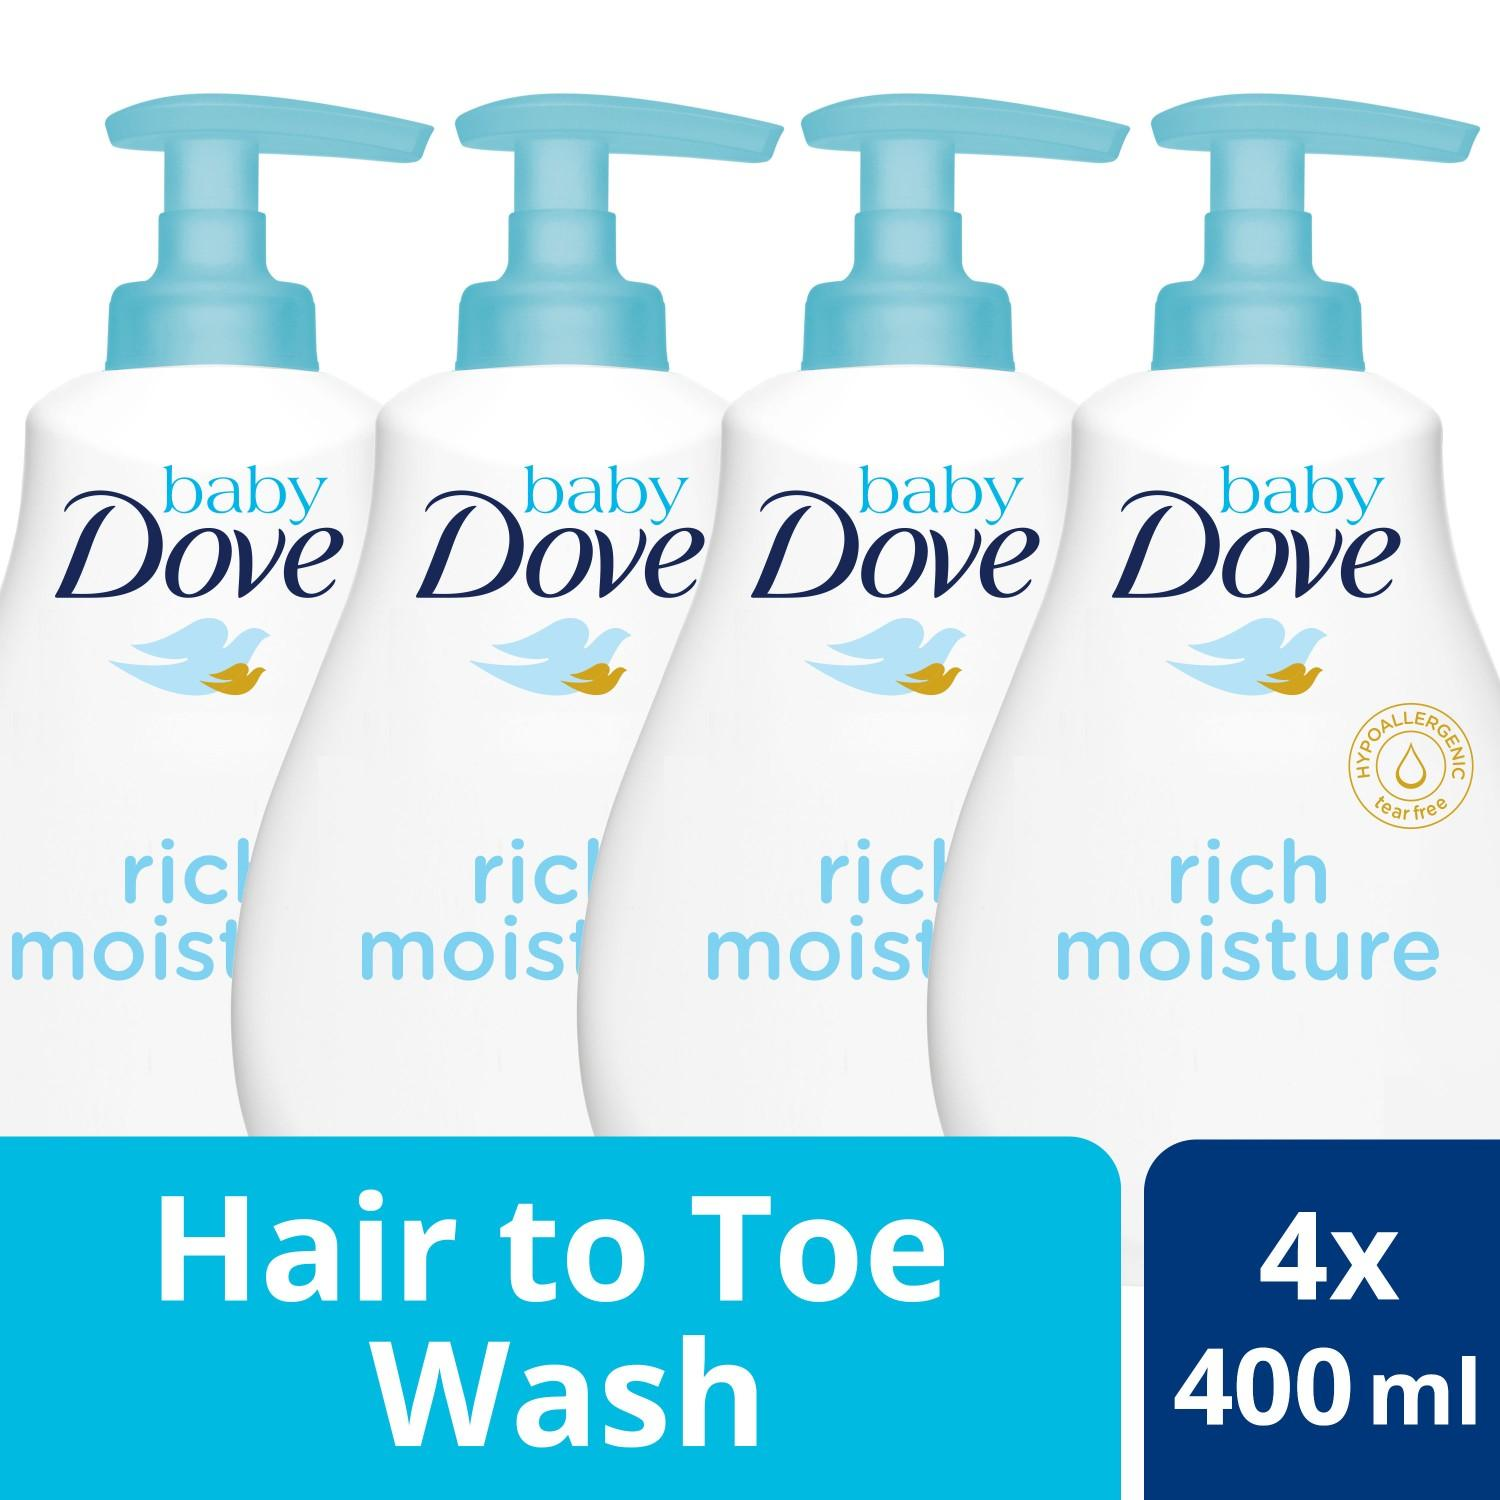 Baby Wash For Sale Body Online Brands Prices Reviews Johnson Top To Toe 200ml Dove Hair Rich Moisture 4x400ml P999 Bundle Pack